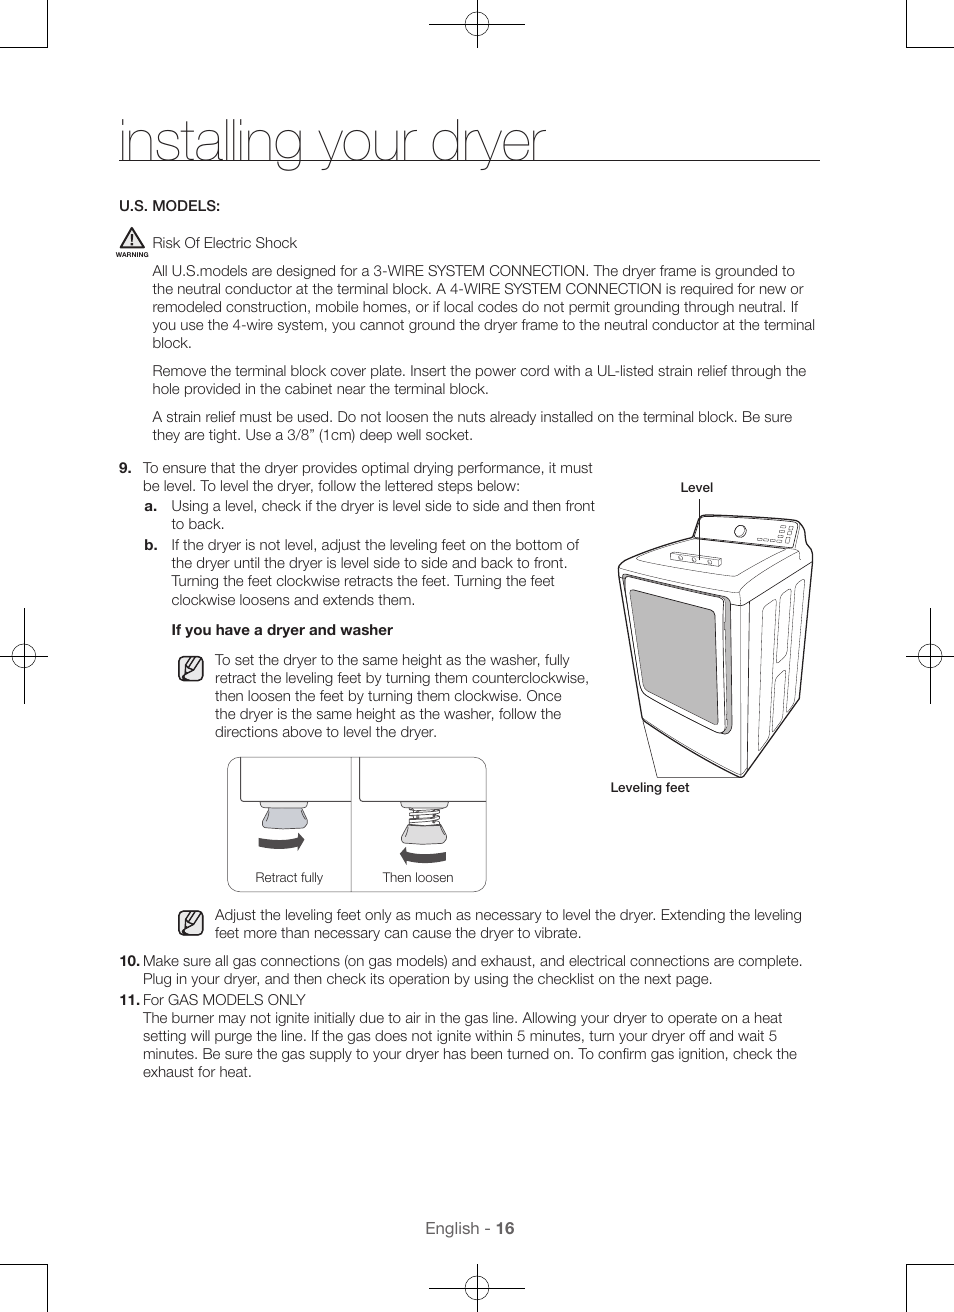 Installing Your Dryer Samsung Dv48h7400gw A2 User Manual Page 16 4 Wire Connection Diagram 120